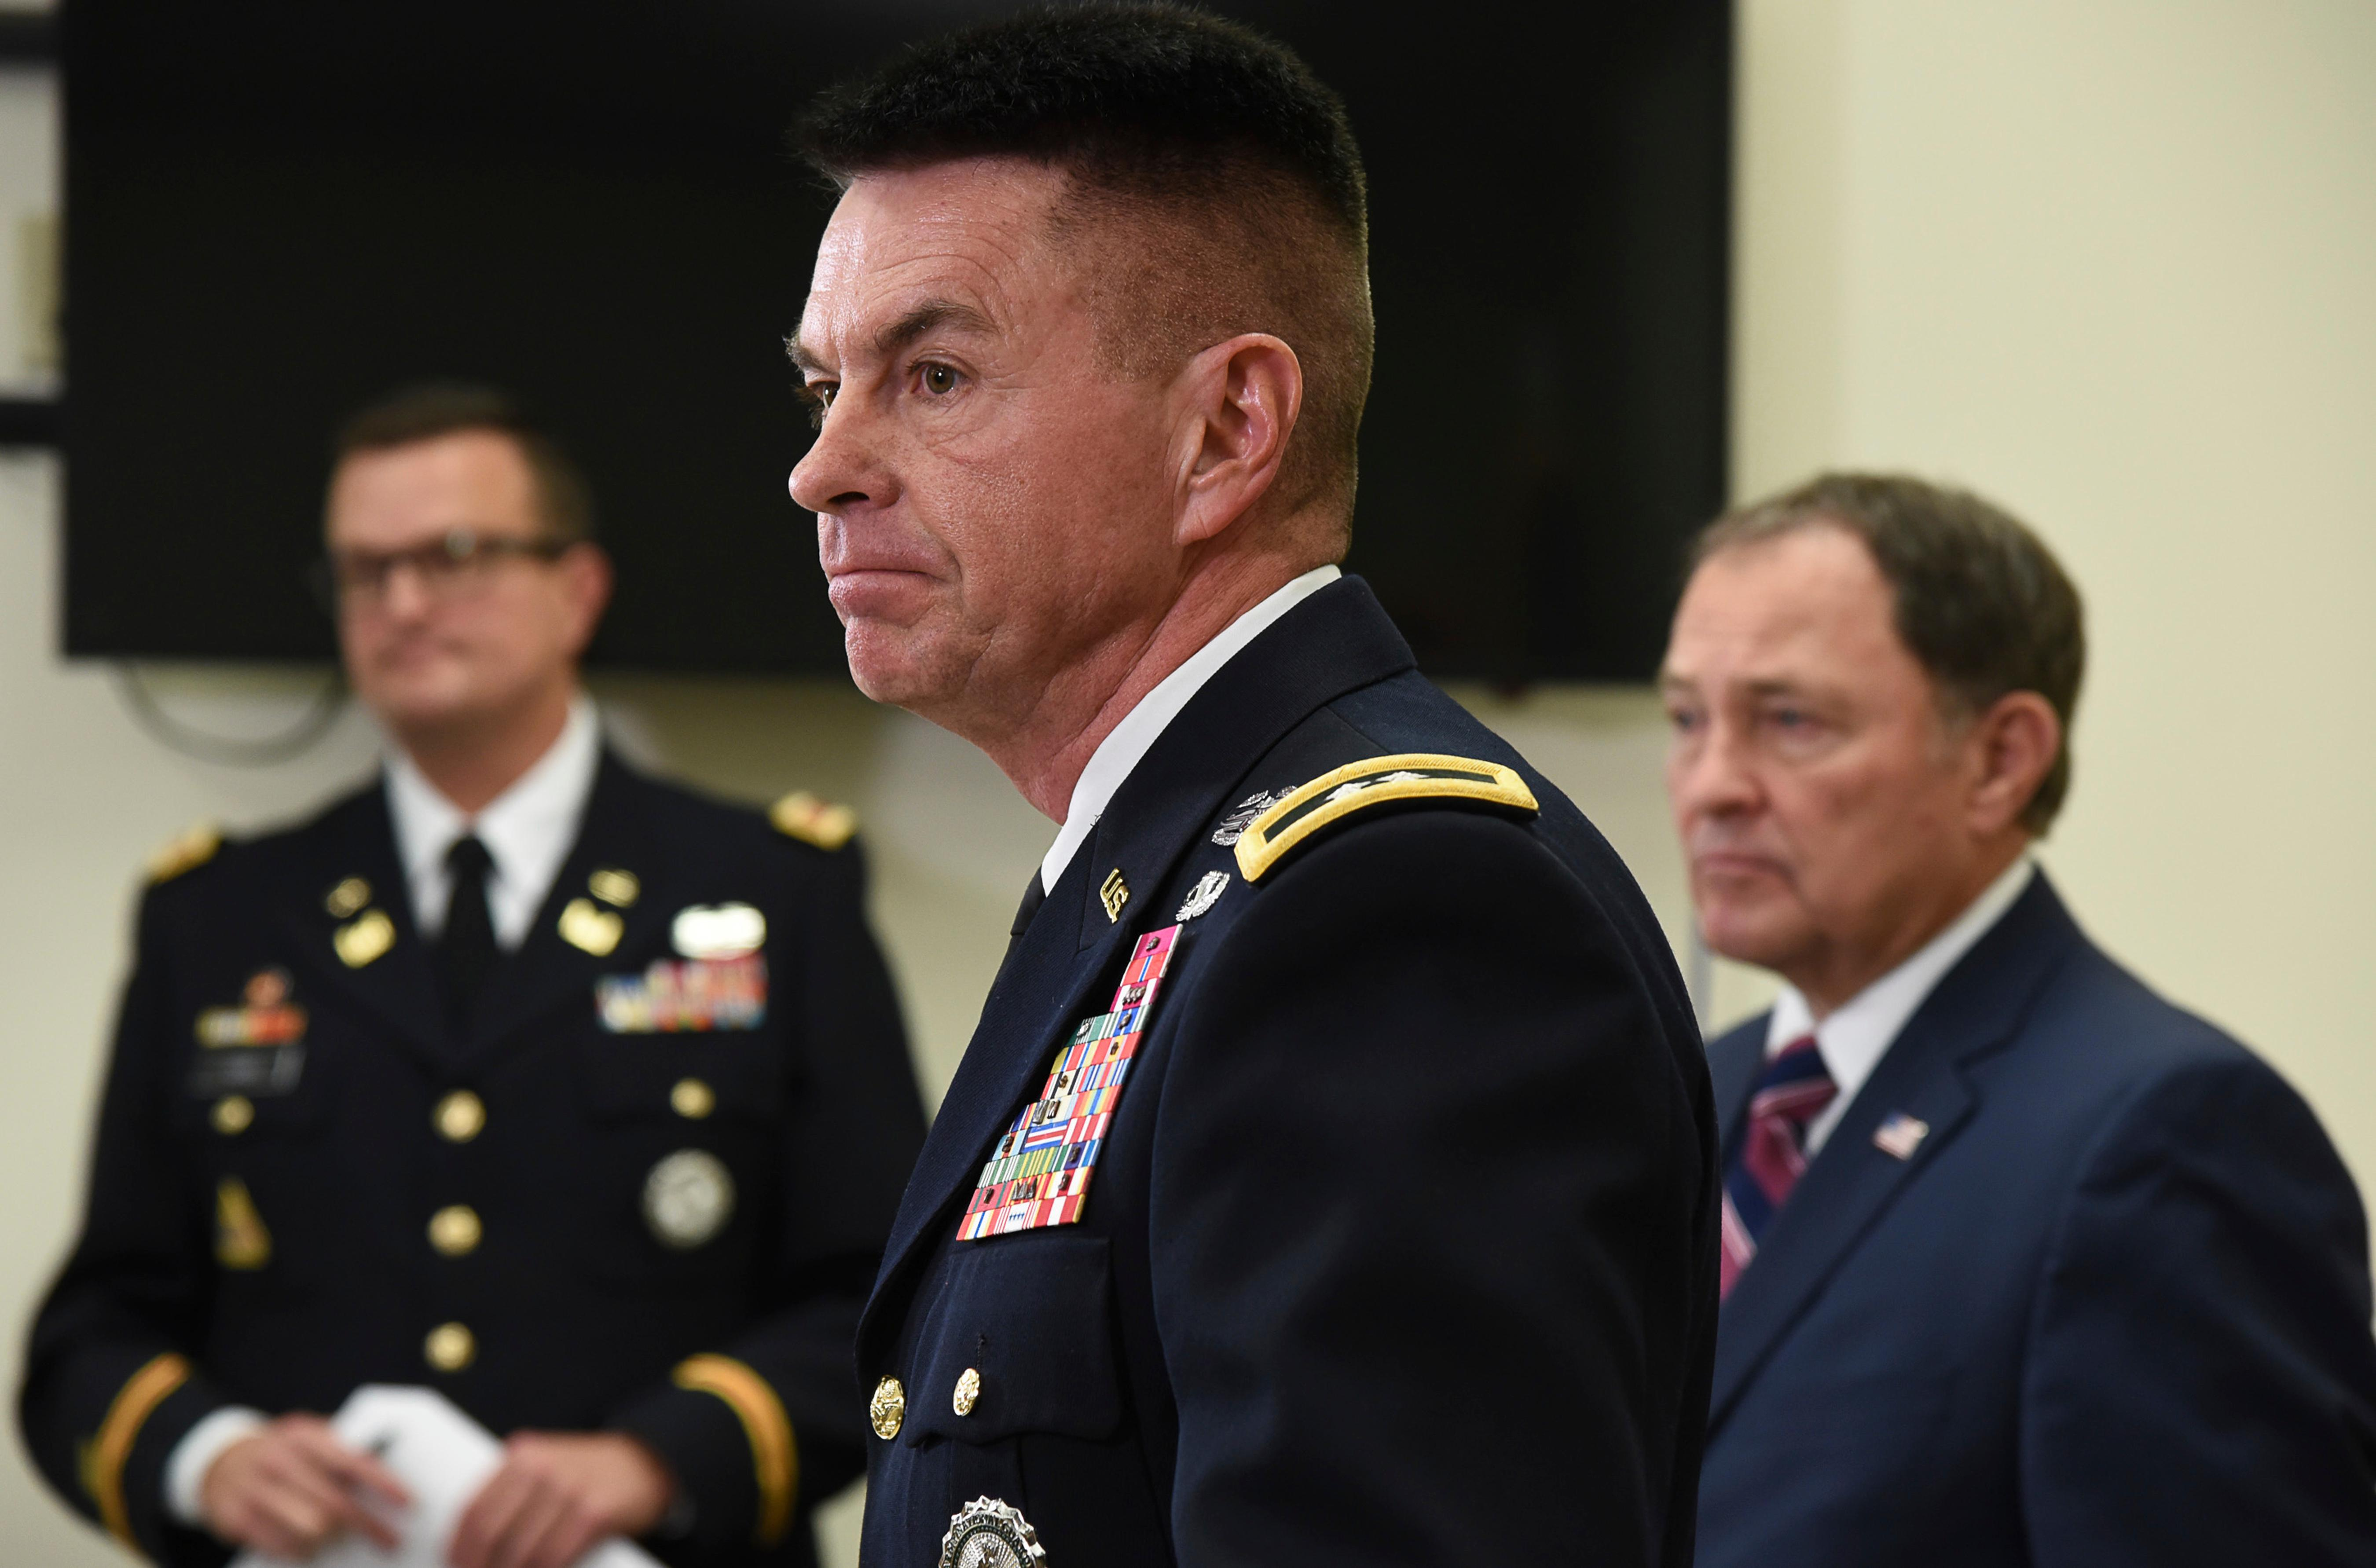 Maj. Gen. Jefferson S. Burton, center, address the media on Sunday, Nov. 4, 2018, in Draper, Utah. Military officials say a major in Utah's Army National Guard who was also the mayor of a city north of Salt Lake City was killed in Afghanistan after being shot by a member of the Afghan security forces. They say North Ogden Mayor Brent Taylor was in the country to train Afghan commandos and was shot Saturday, Nov. 3, 2018, by one of the trainees at the Kabul military training center. The attacker was then killed by Afghan forces. (Francisco Kjolseth/The Salt Lake Tribune, via AP)